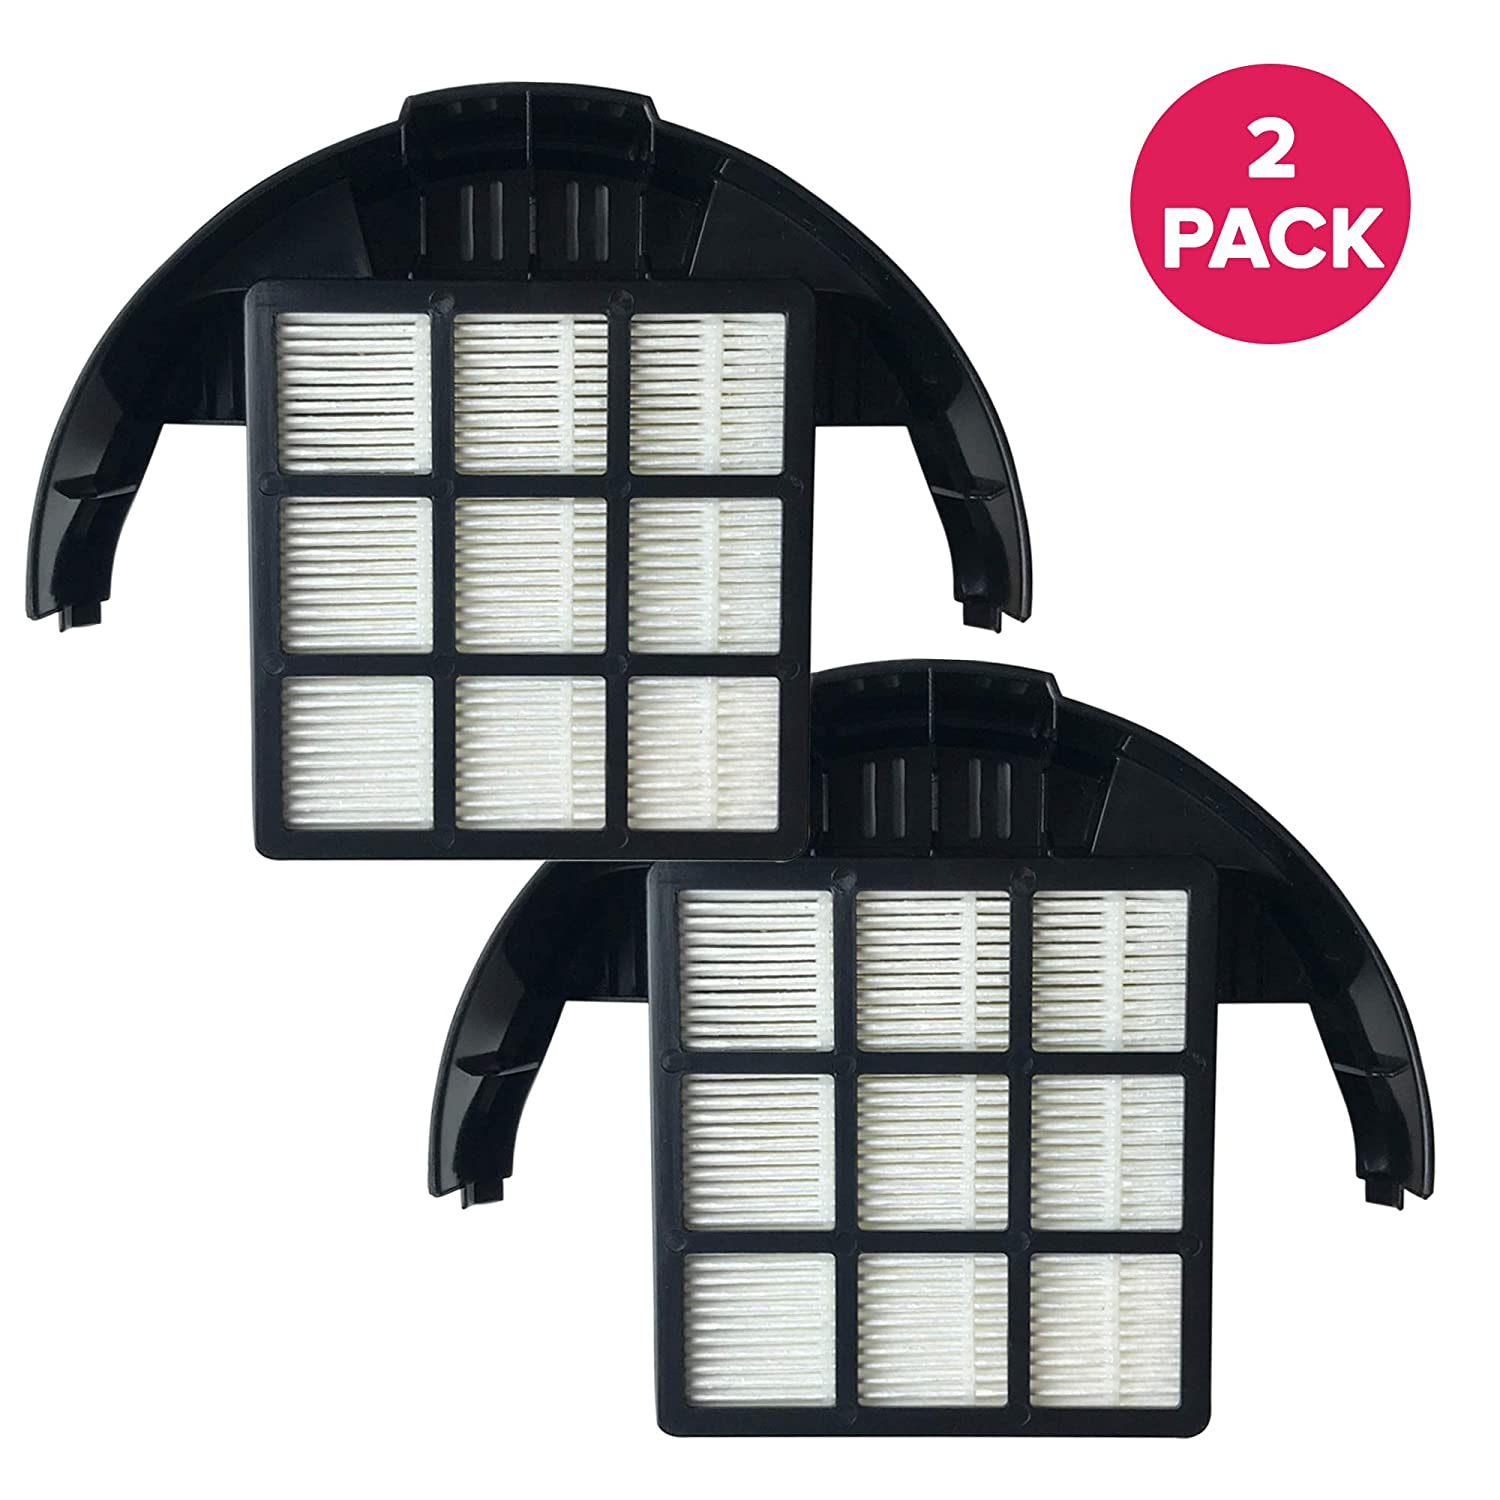 Think Crucial 2 Replacements for Hoover T-Series HEPA Style Filter Fits WindTunnel & Rewind Bagless, Compatible With Part # 303172001, 303172002 & 902404001